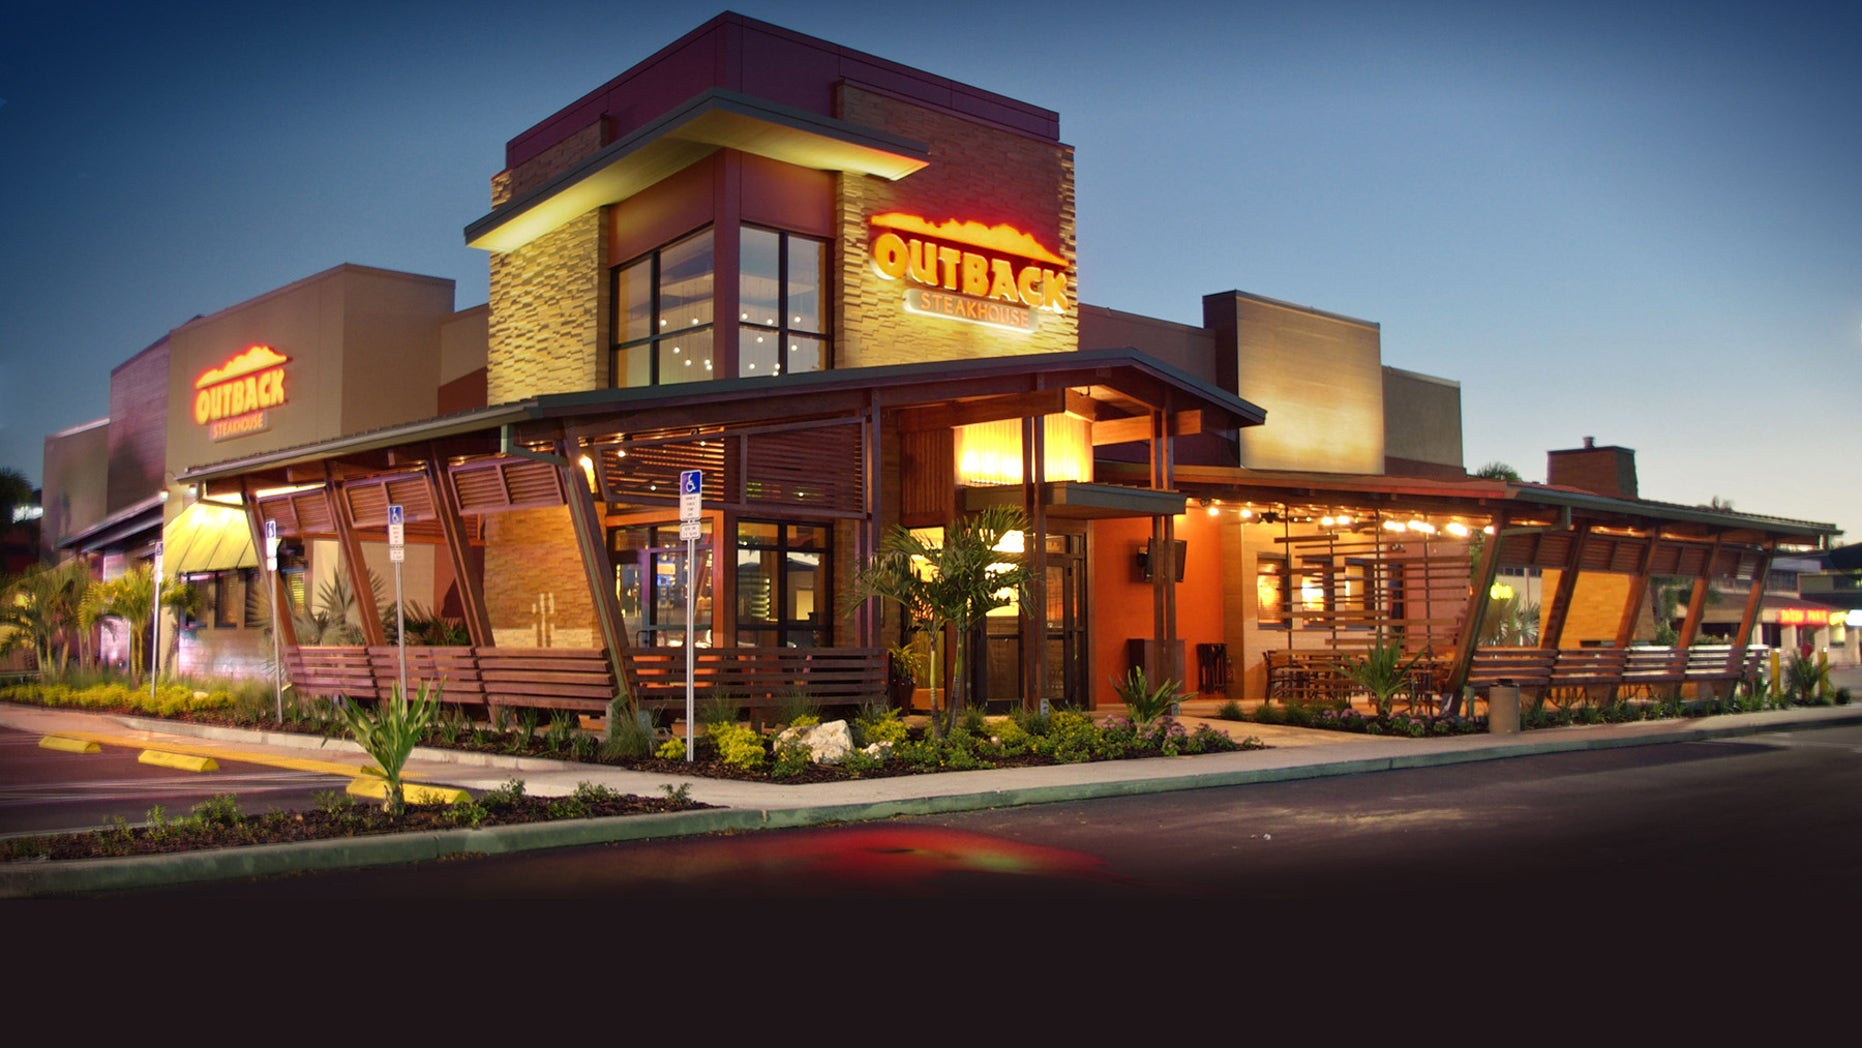 Outback Tupelo Ms >> The 5 Dishes Health Nuts Order At Outback Steakhouse Fox News